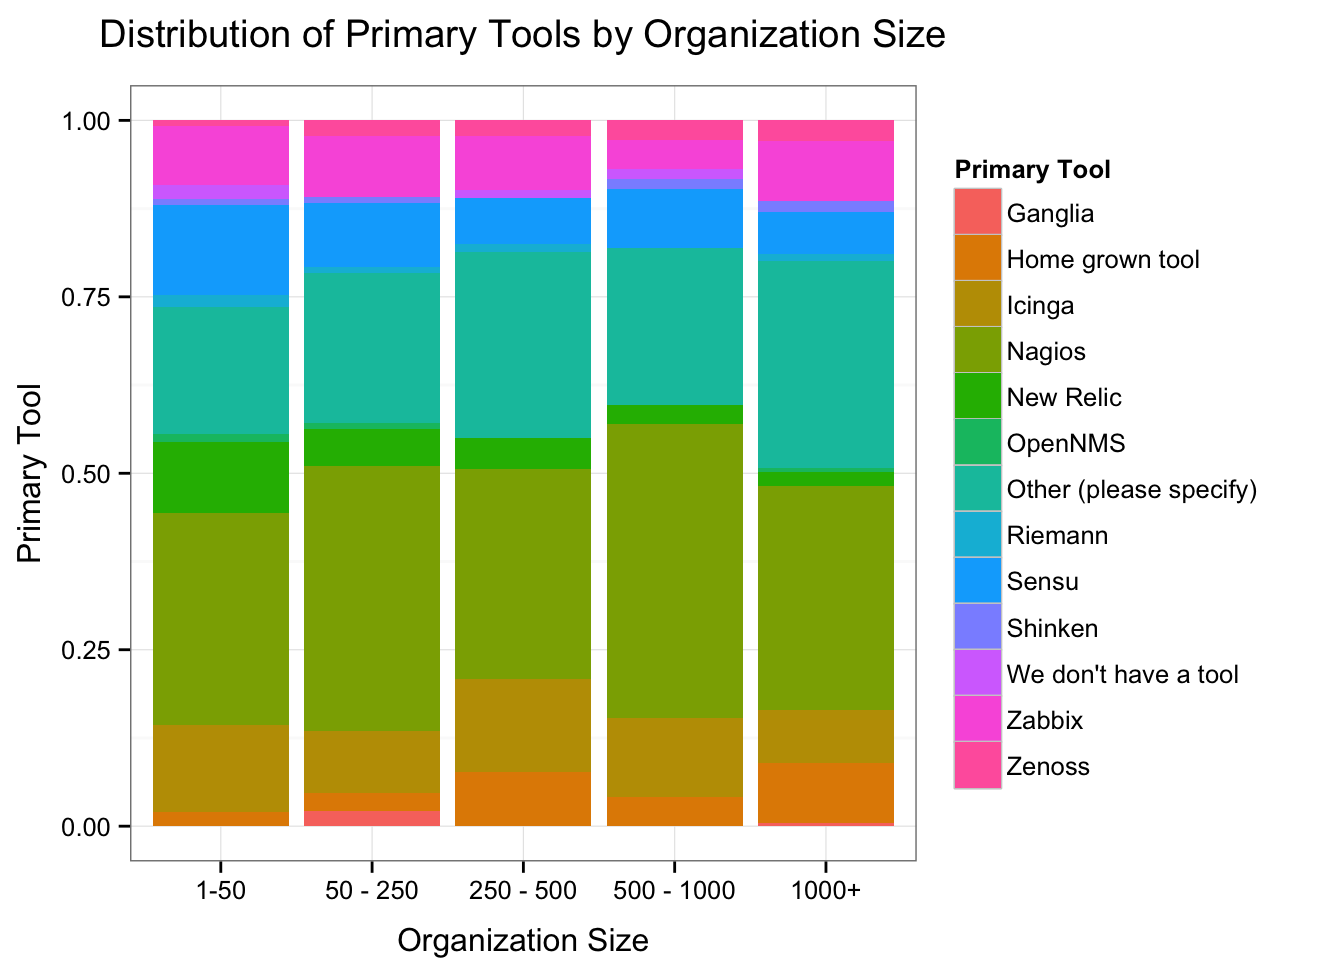 Primary Tools by Organization Size